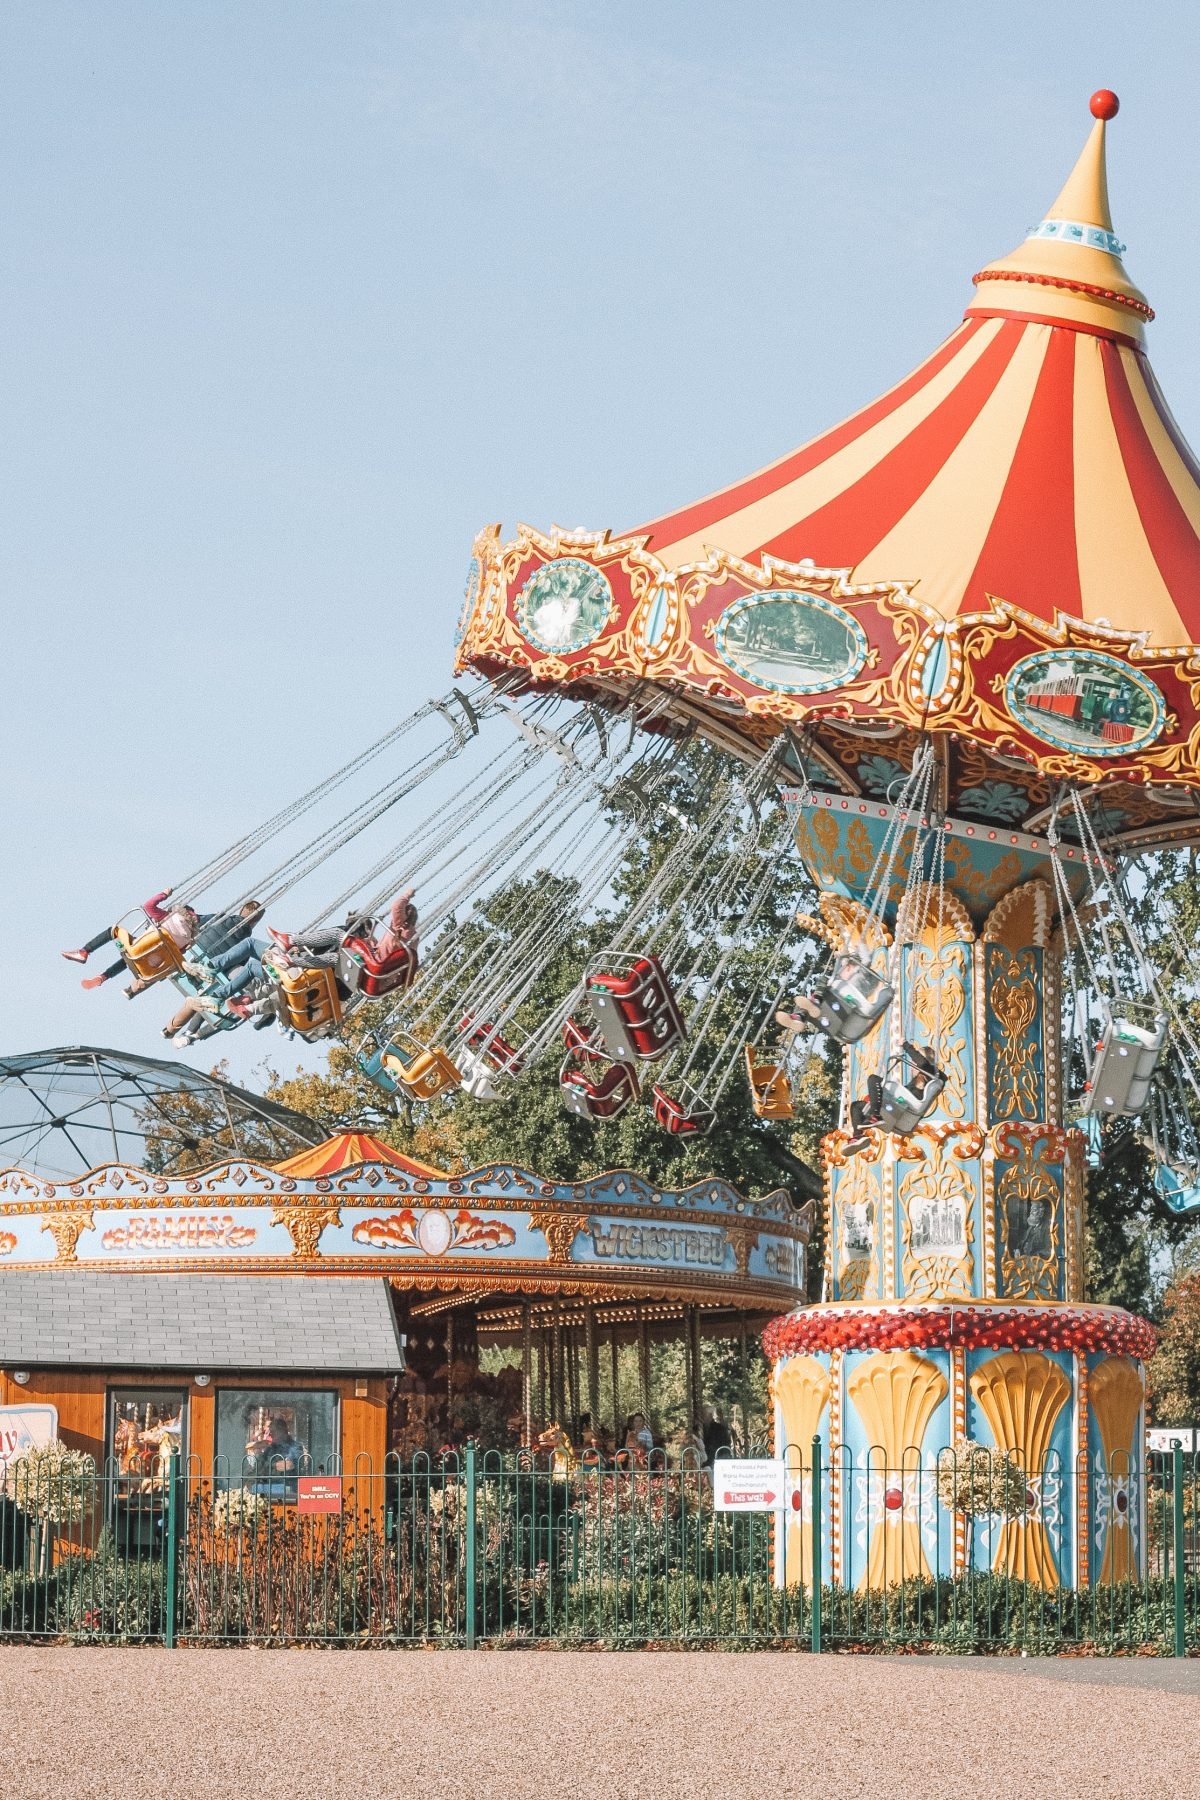 An amusement park ride in the afternoon sun